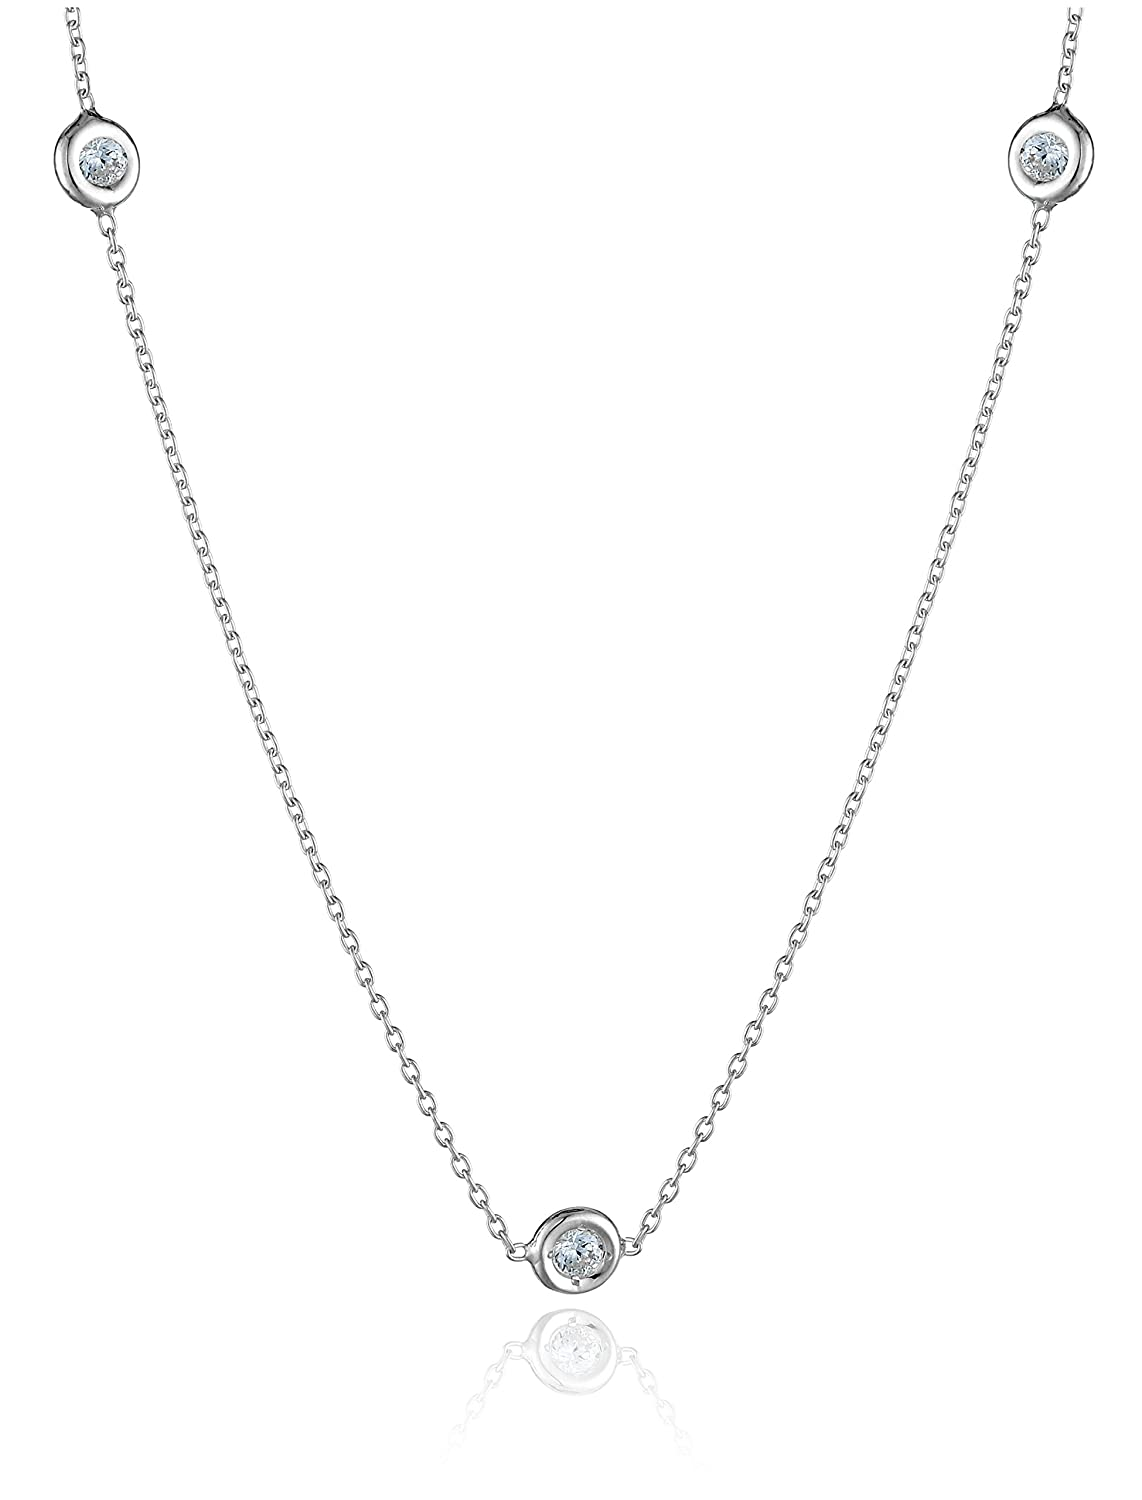 Amazon roberto coin tiny treasures 18k white gold 7 station amazon roberto coin tiny treasures 18k white gold 7 station diamond station necklace 13cttw g h color si1 clarity 16 2 jewelry mozeypictures Gallery